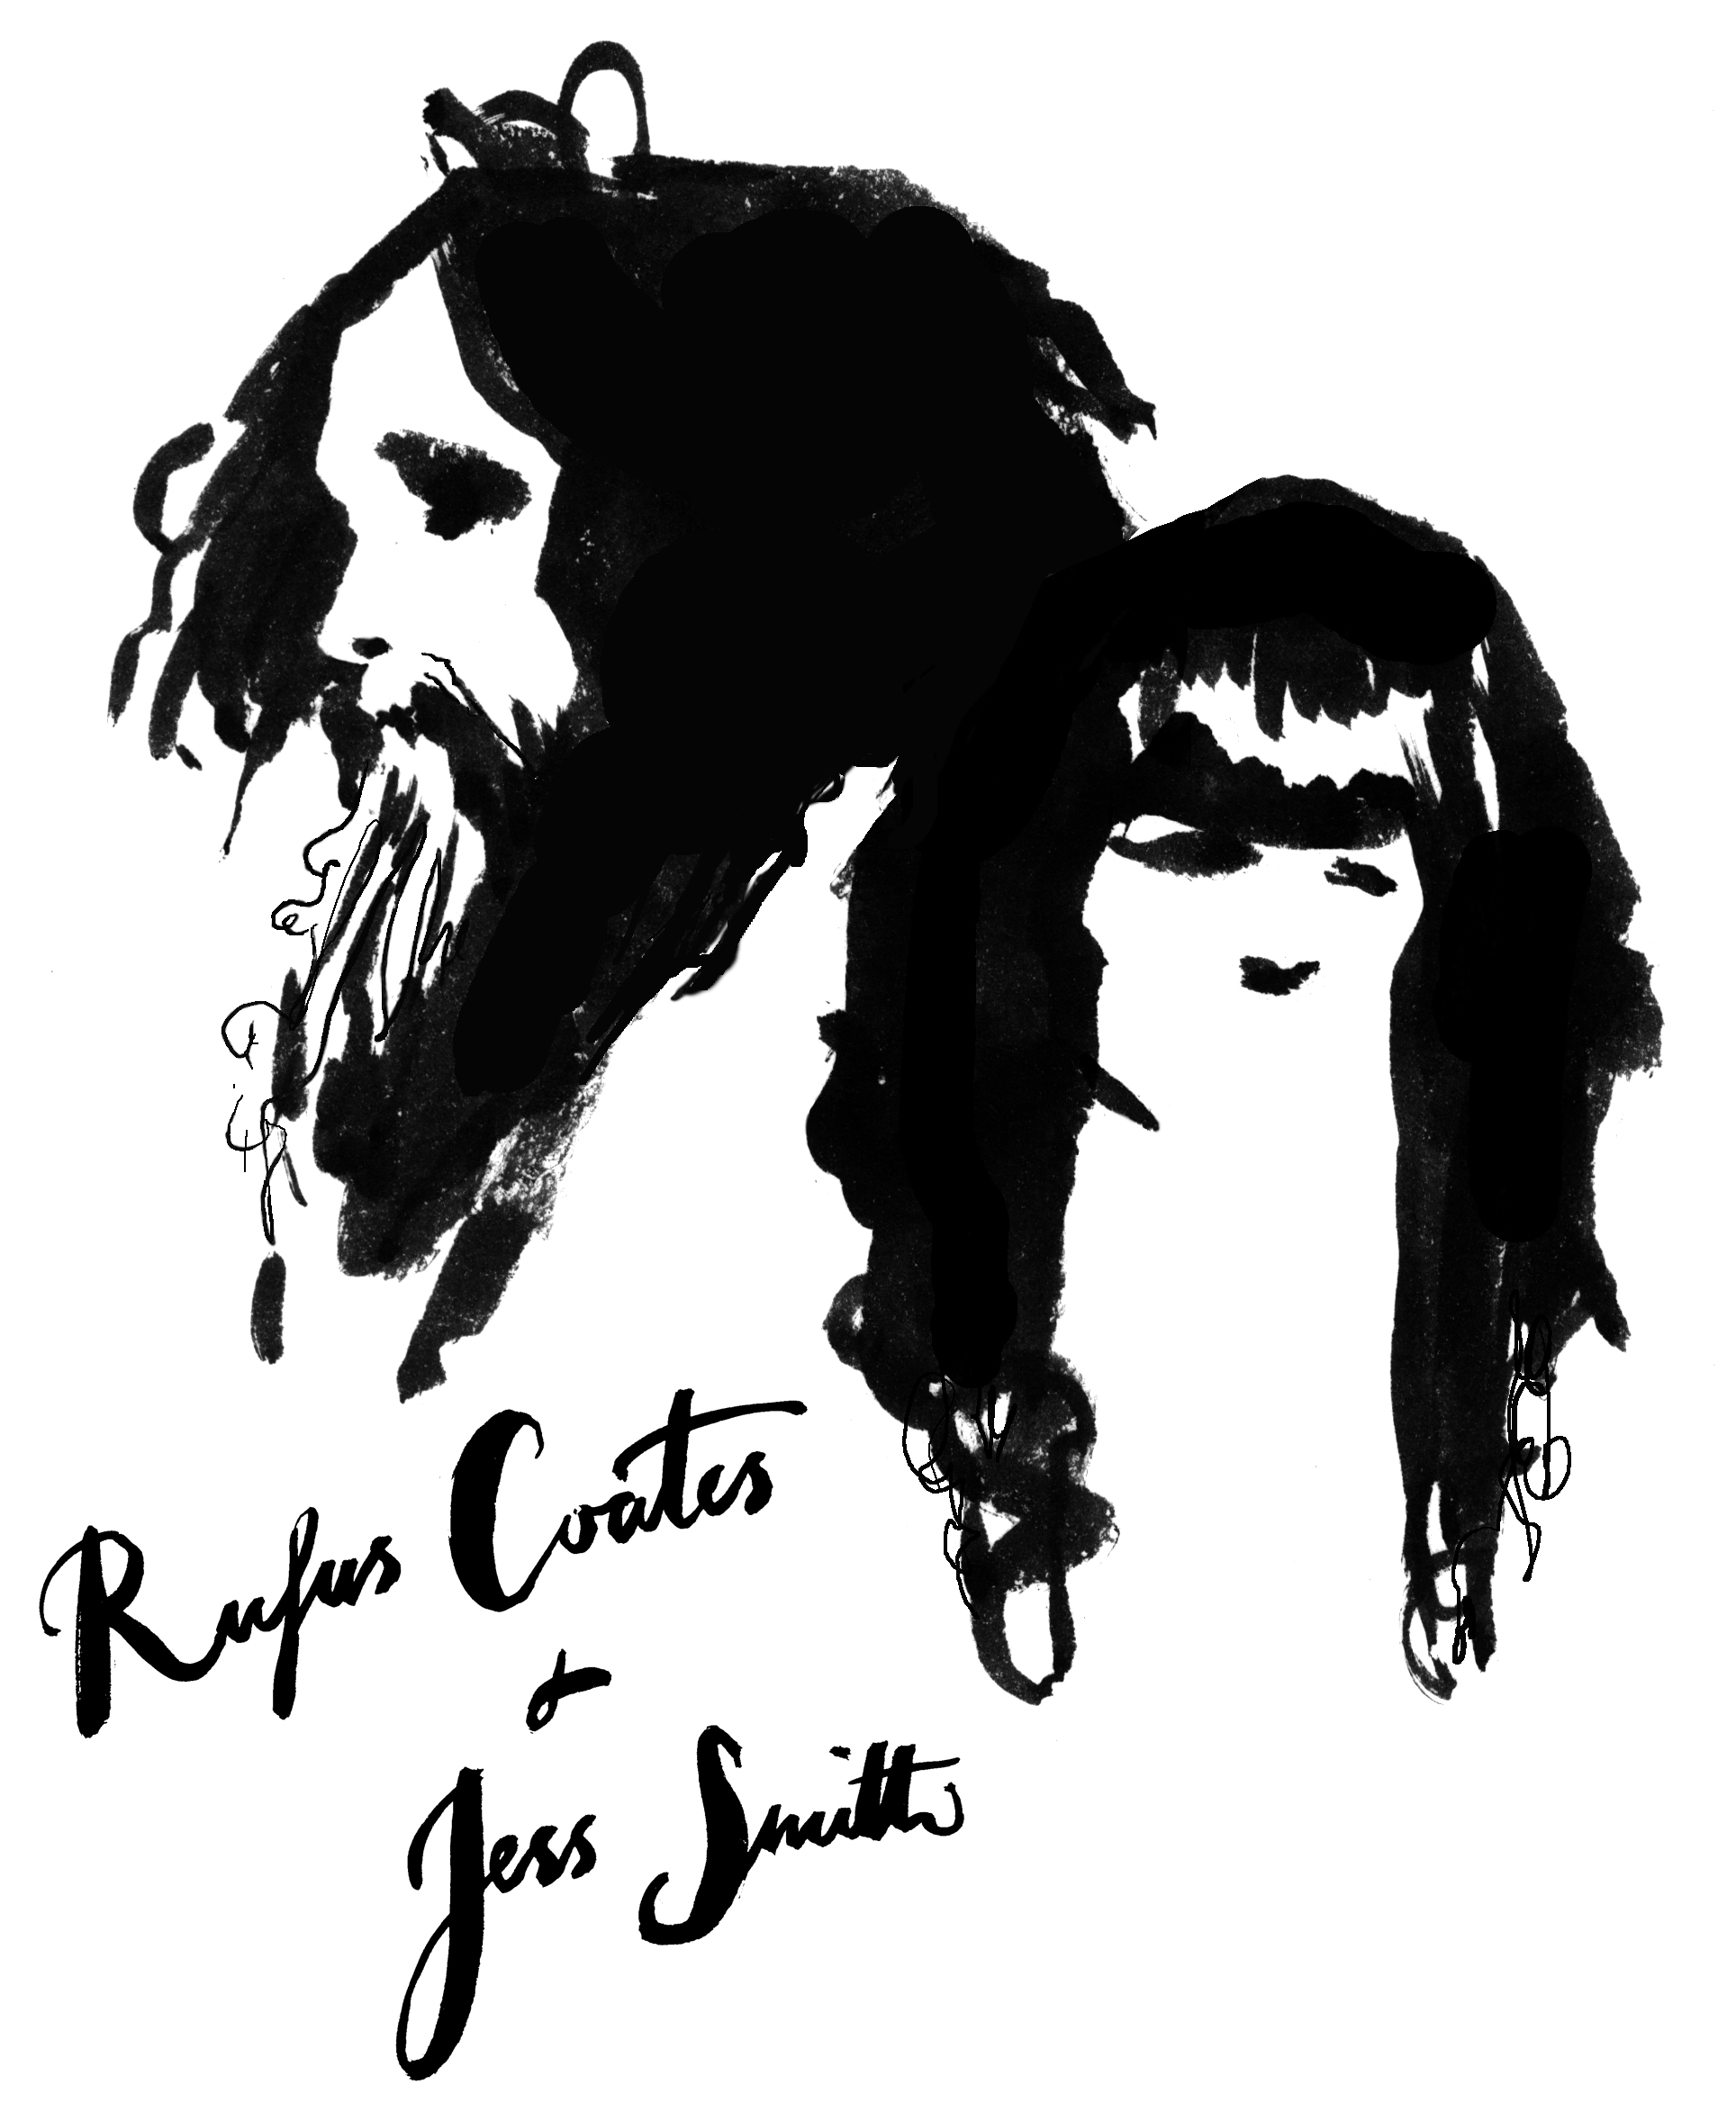 Rufus Coates & Jess Smith